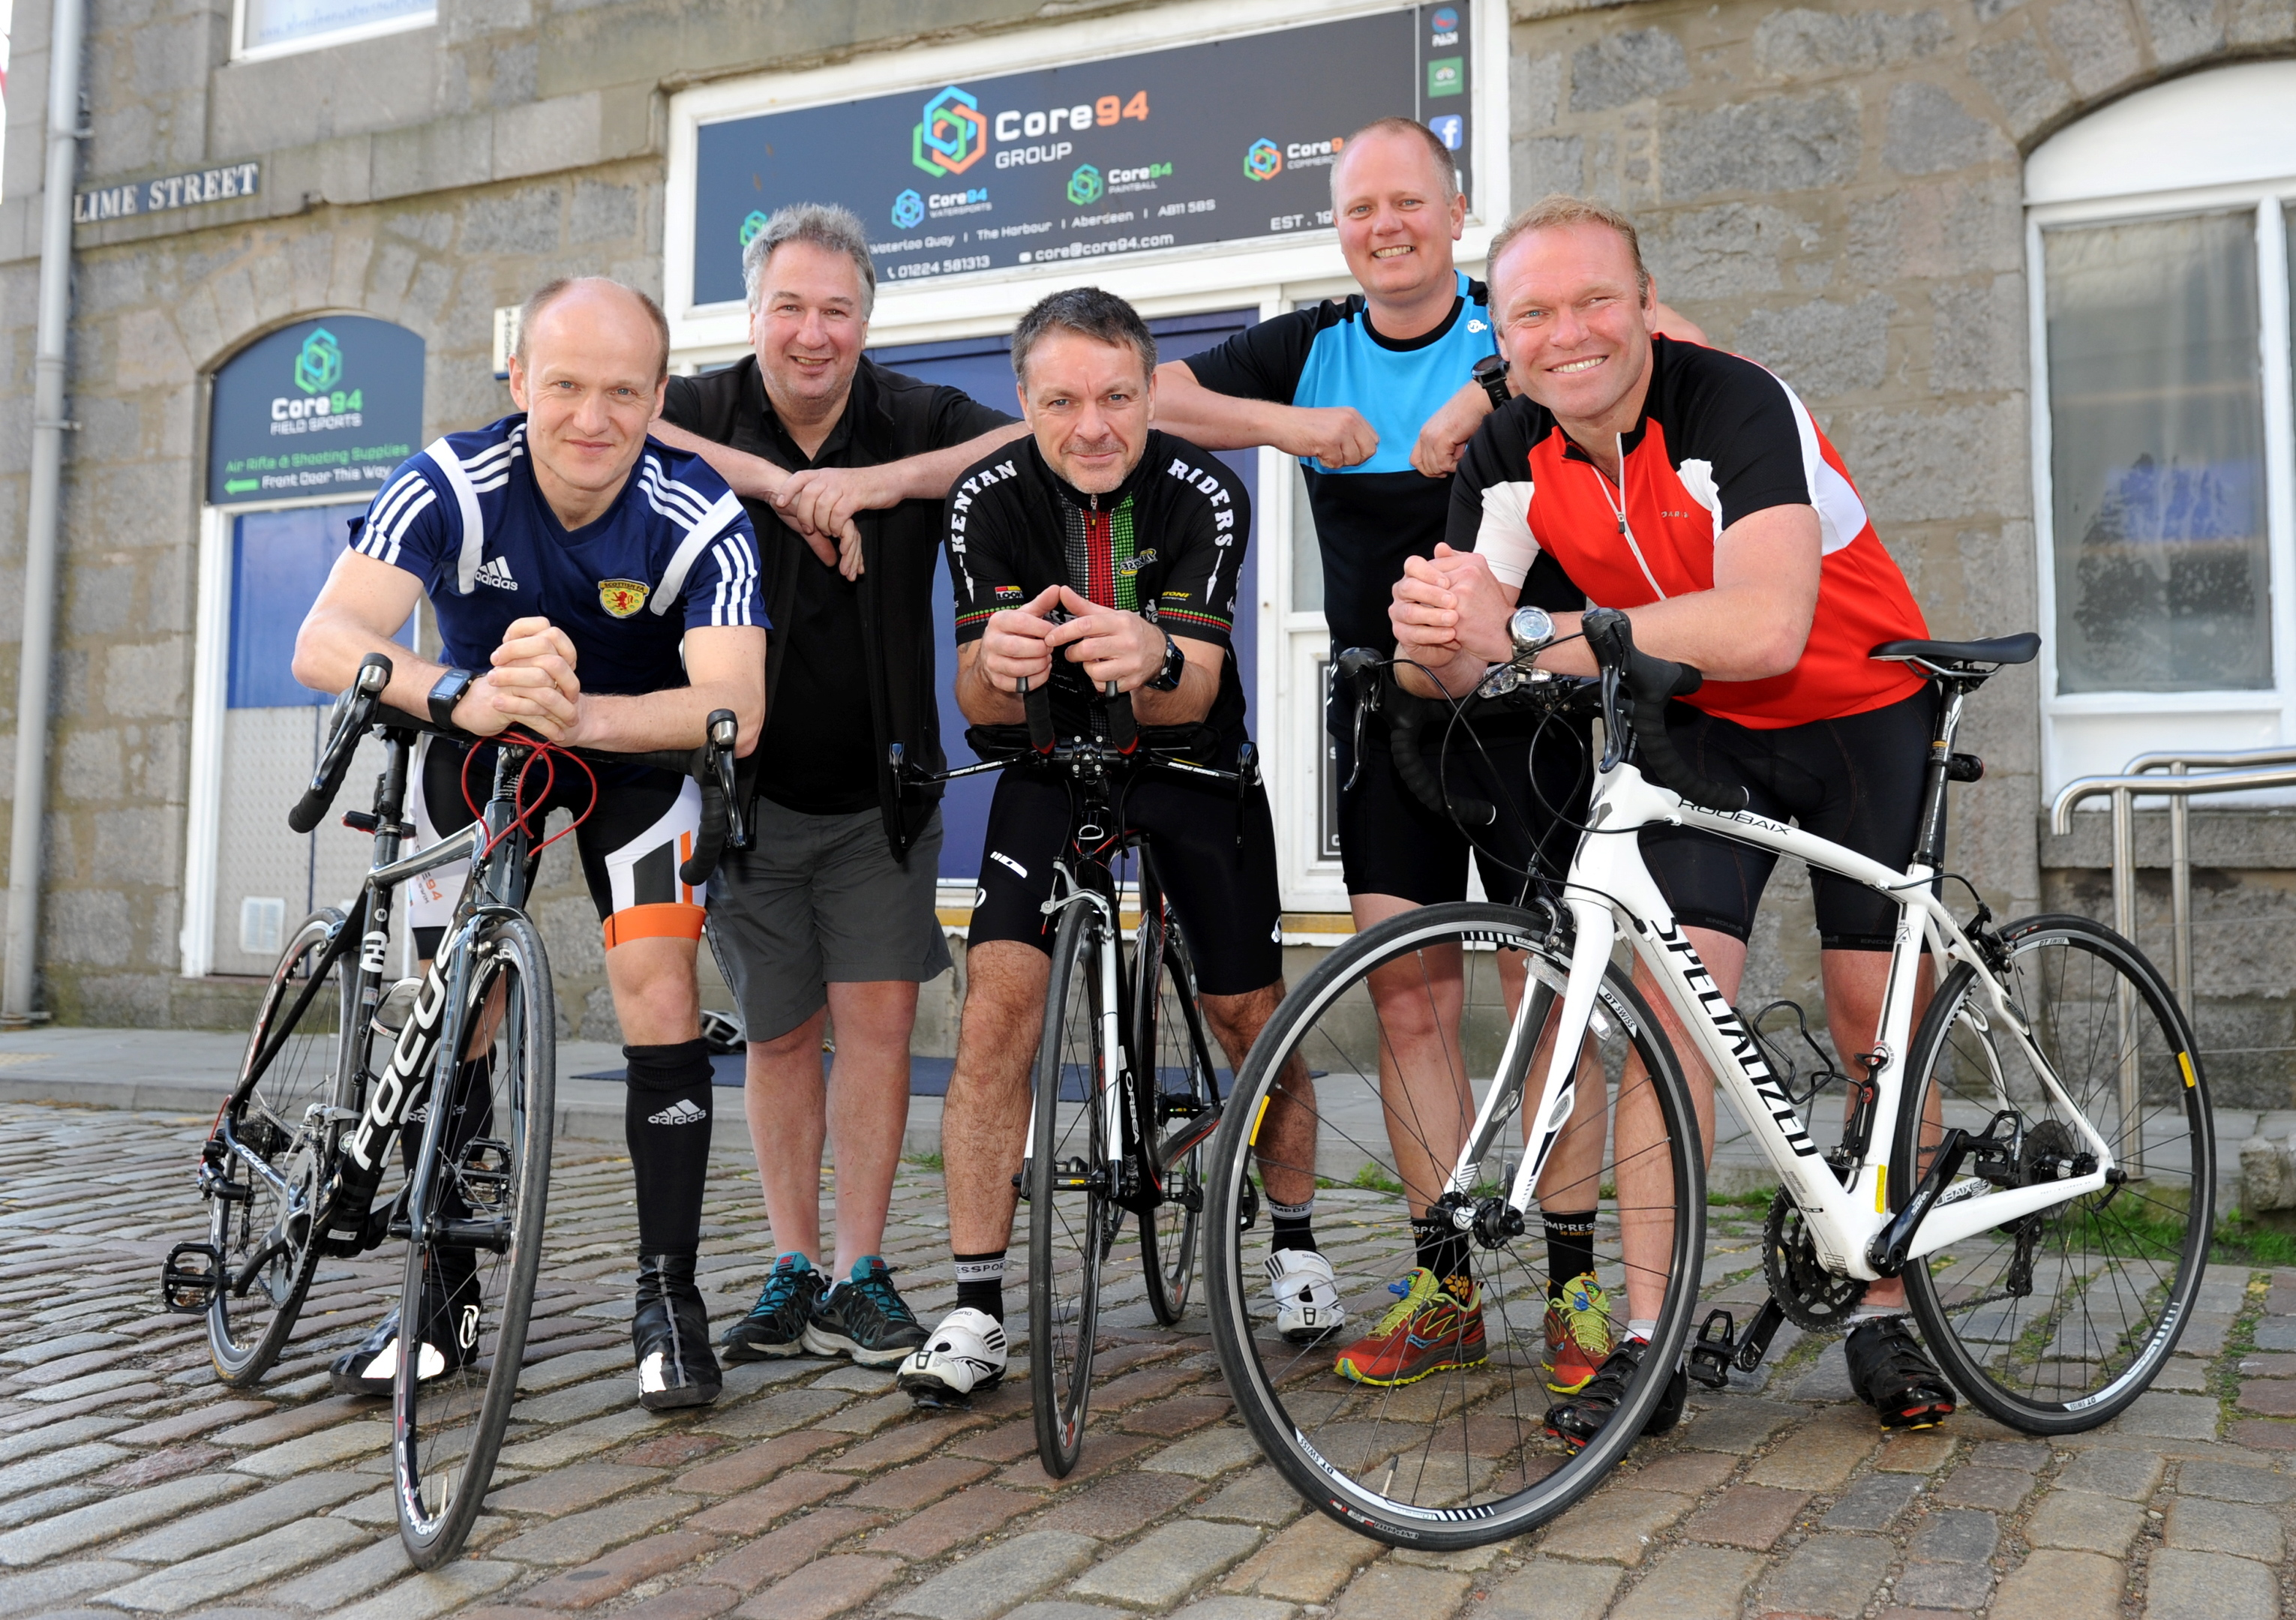 The group launched their fundraising trip this morning